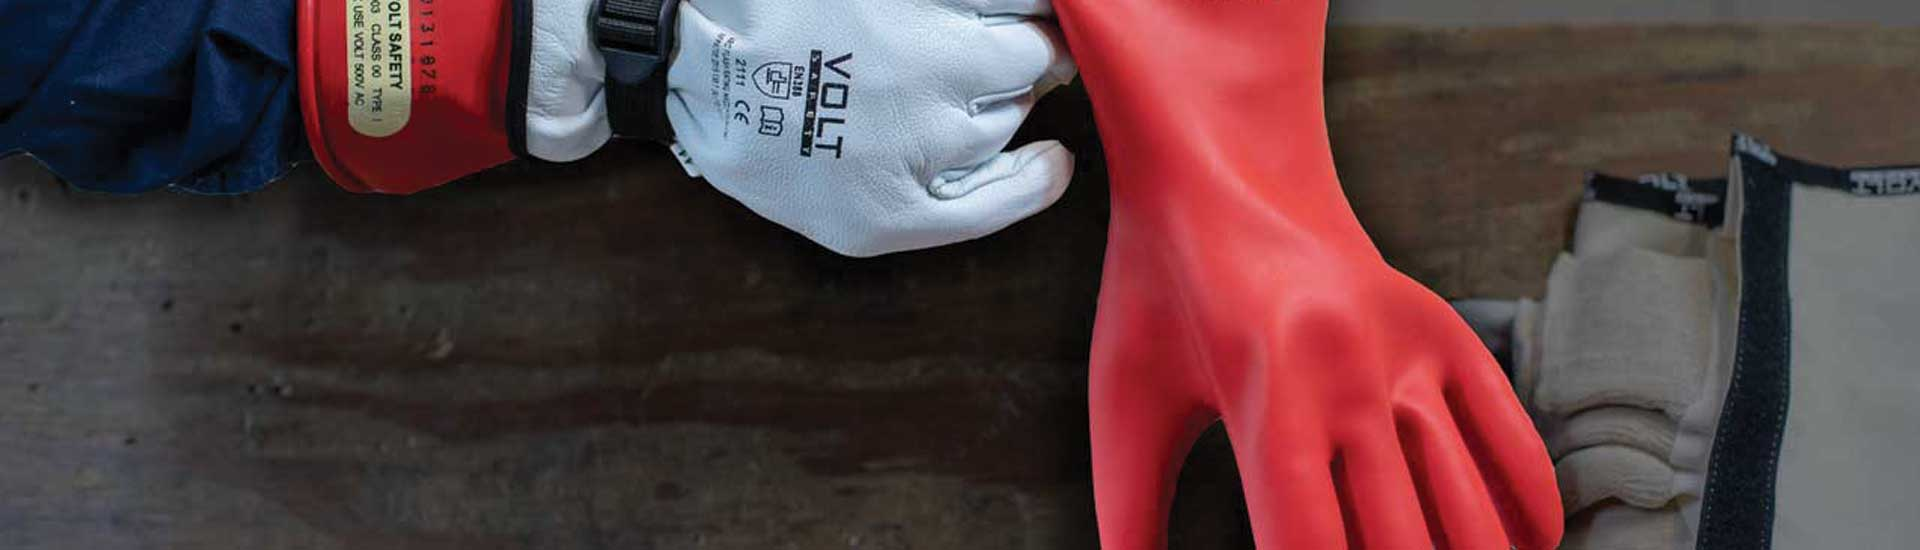 Electrical Industry Gloves & Hand Protection